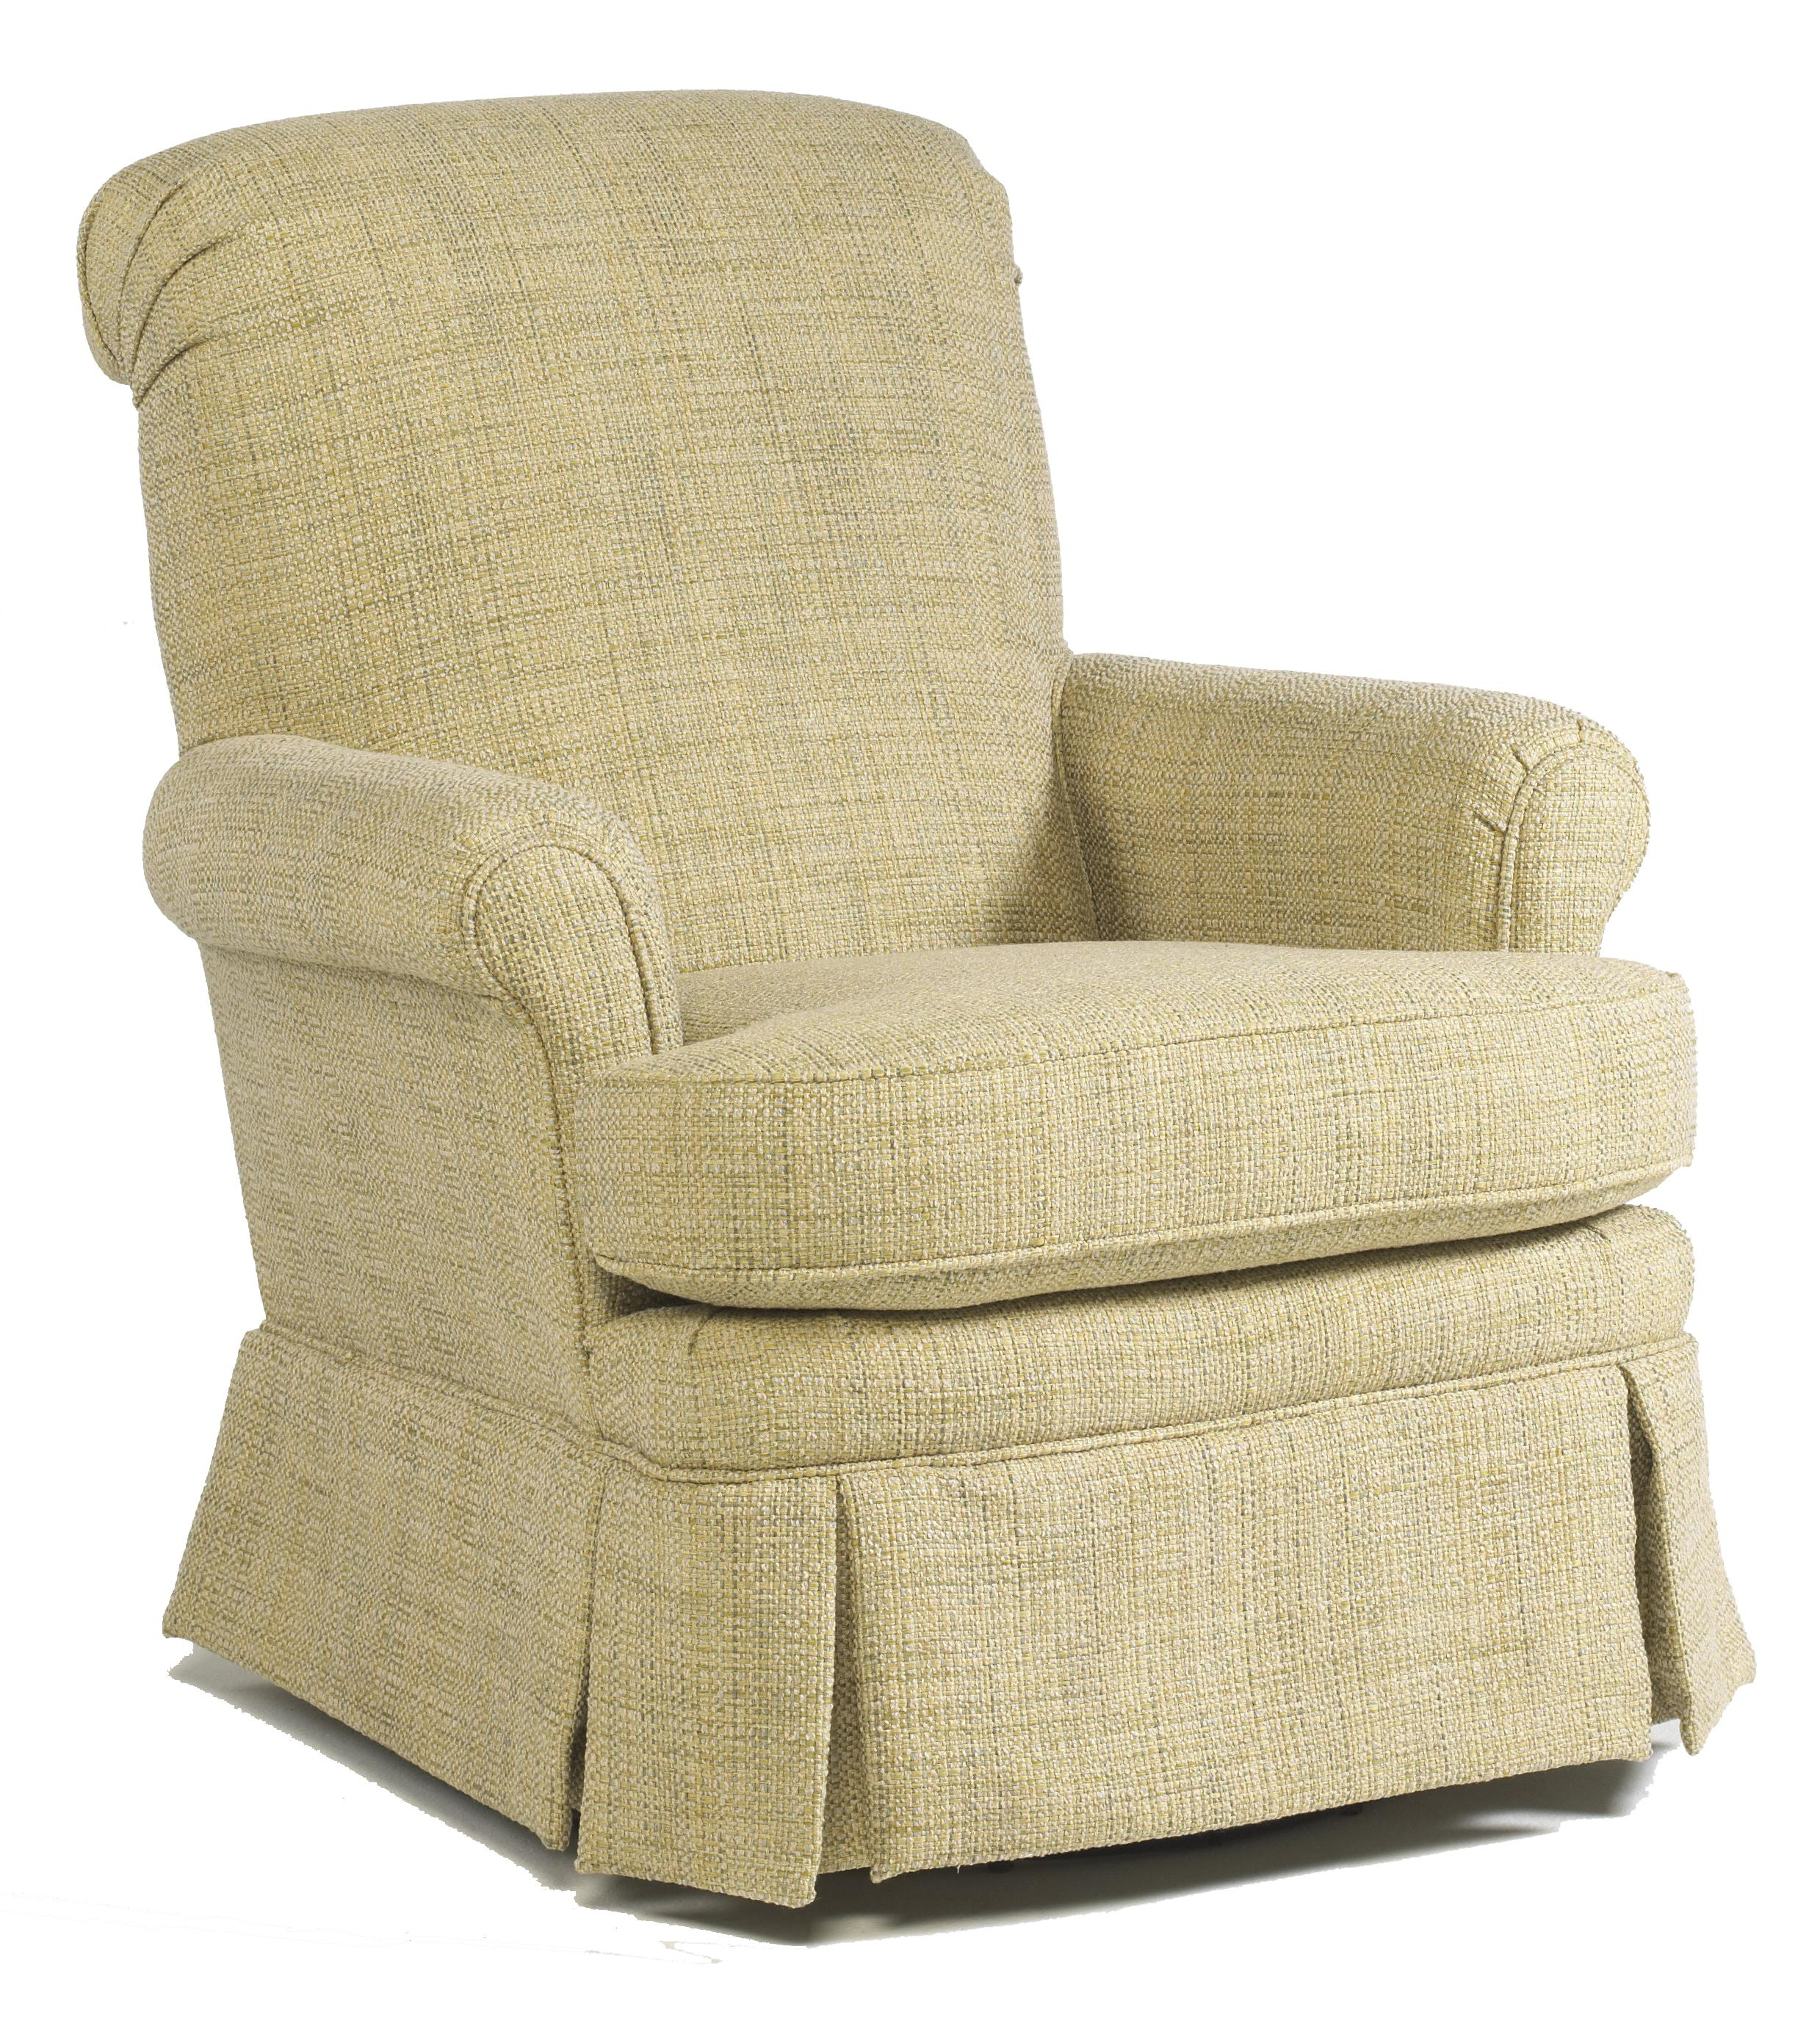 Storytime Swivel Chairs and Ottomans Nava Chair by Best Chairs Storytime Series at Best Home Furnishings